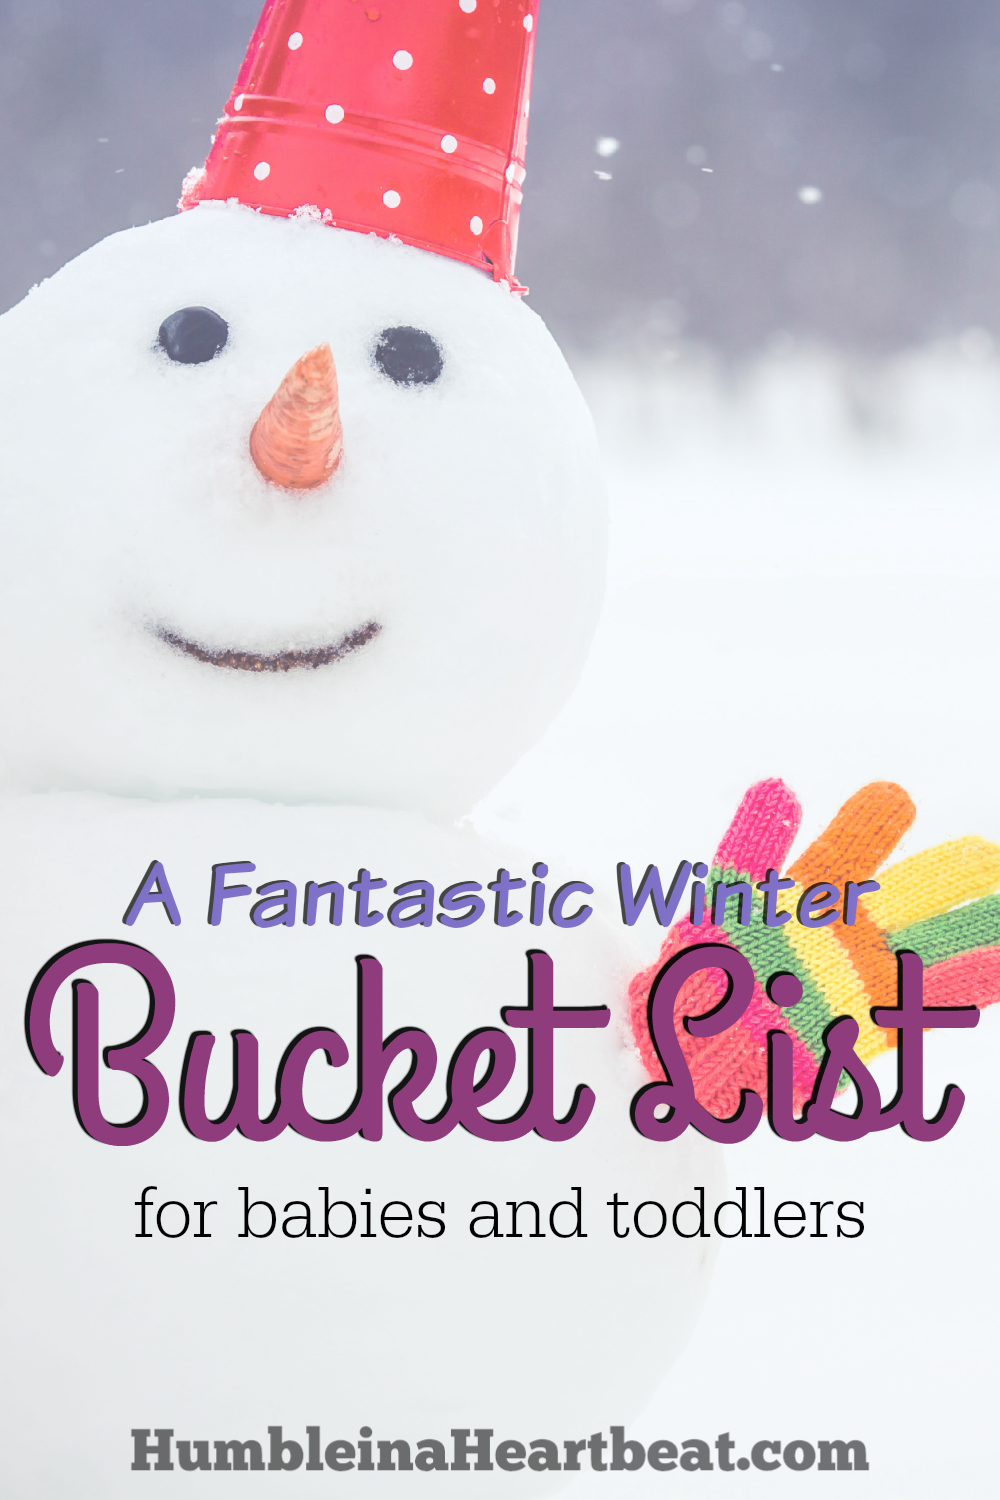 Babies and toddlers love the magic of winter, so don't let the season pass by without taking them outside to enjoy the snow!